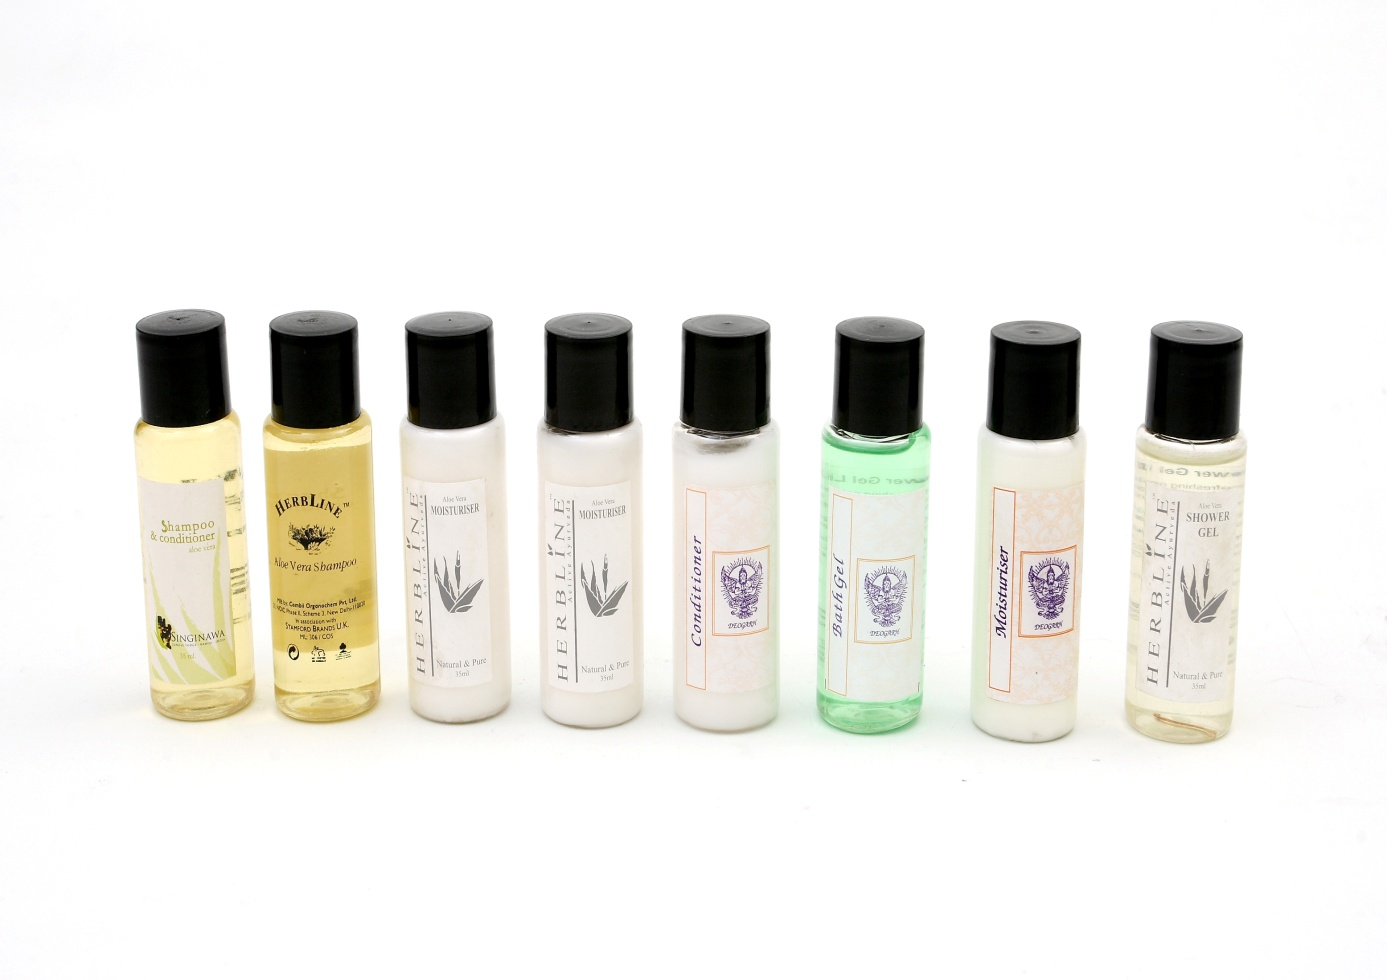 The Ginger Lilly Range